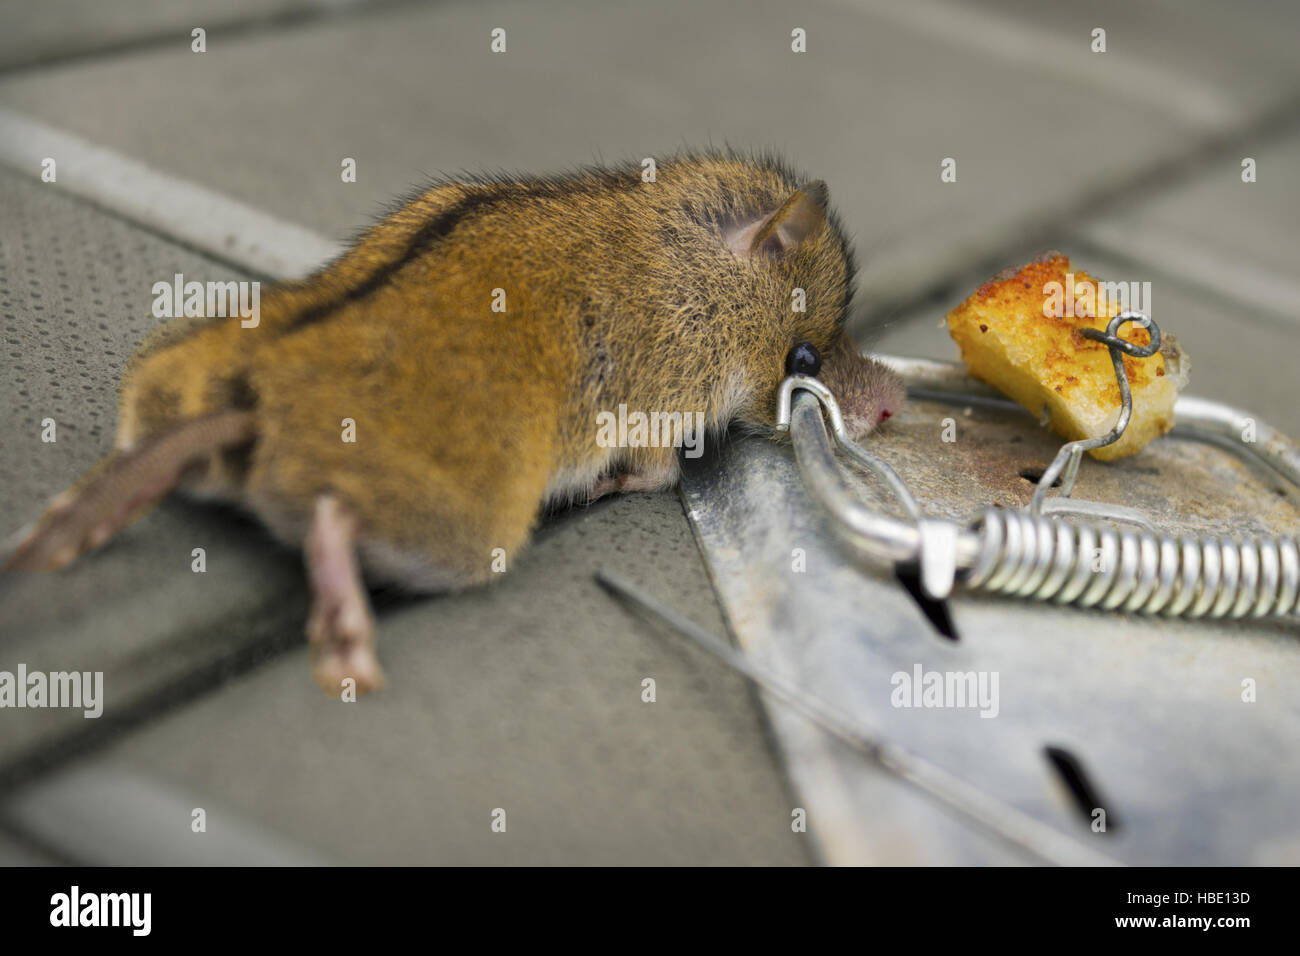 The destruction of rodents using mousetrap - Stock Image